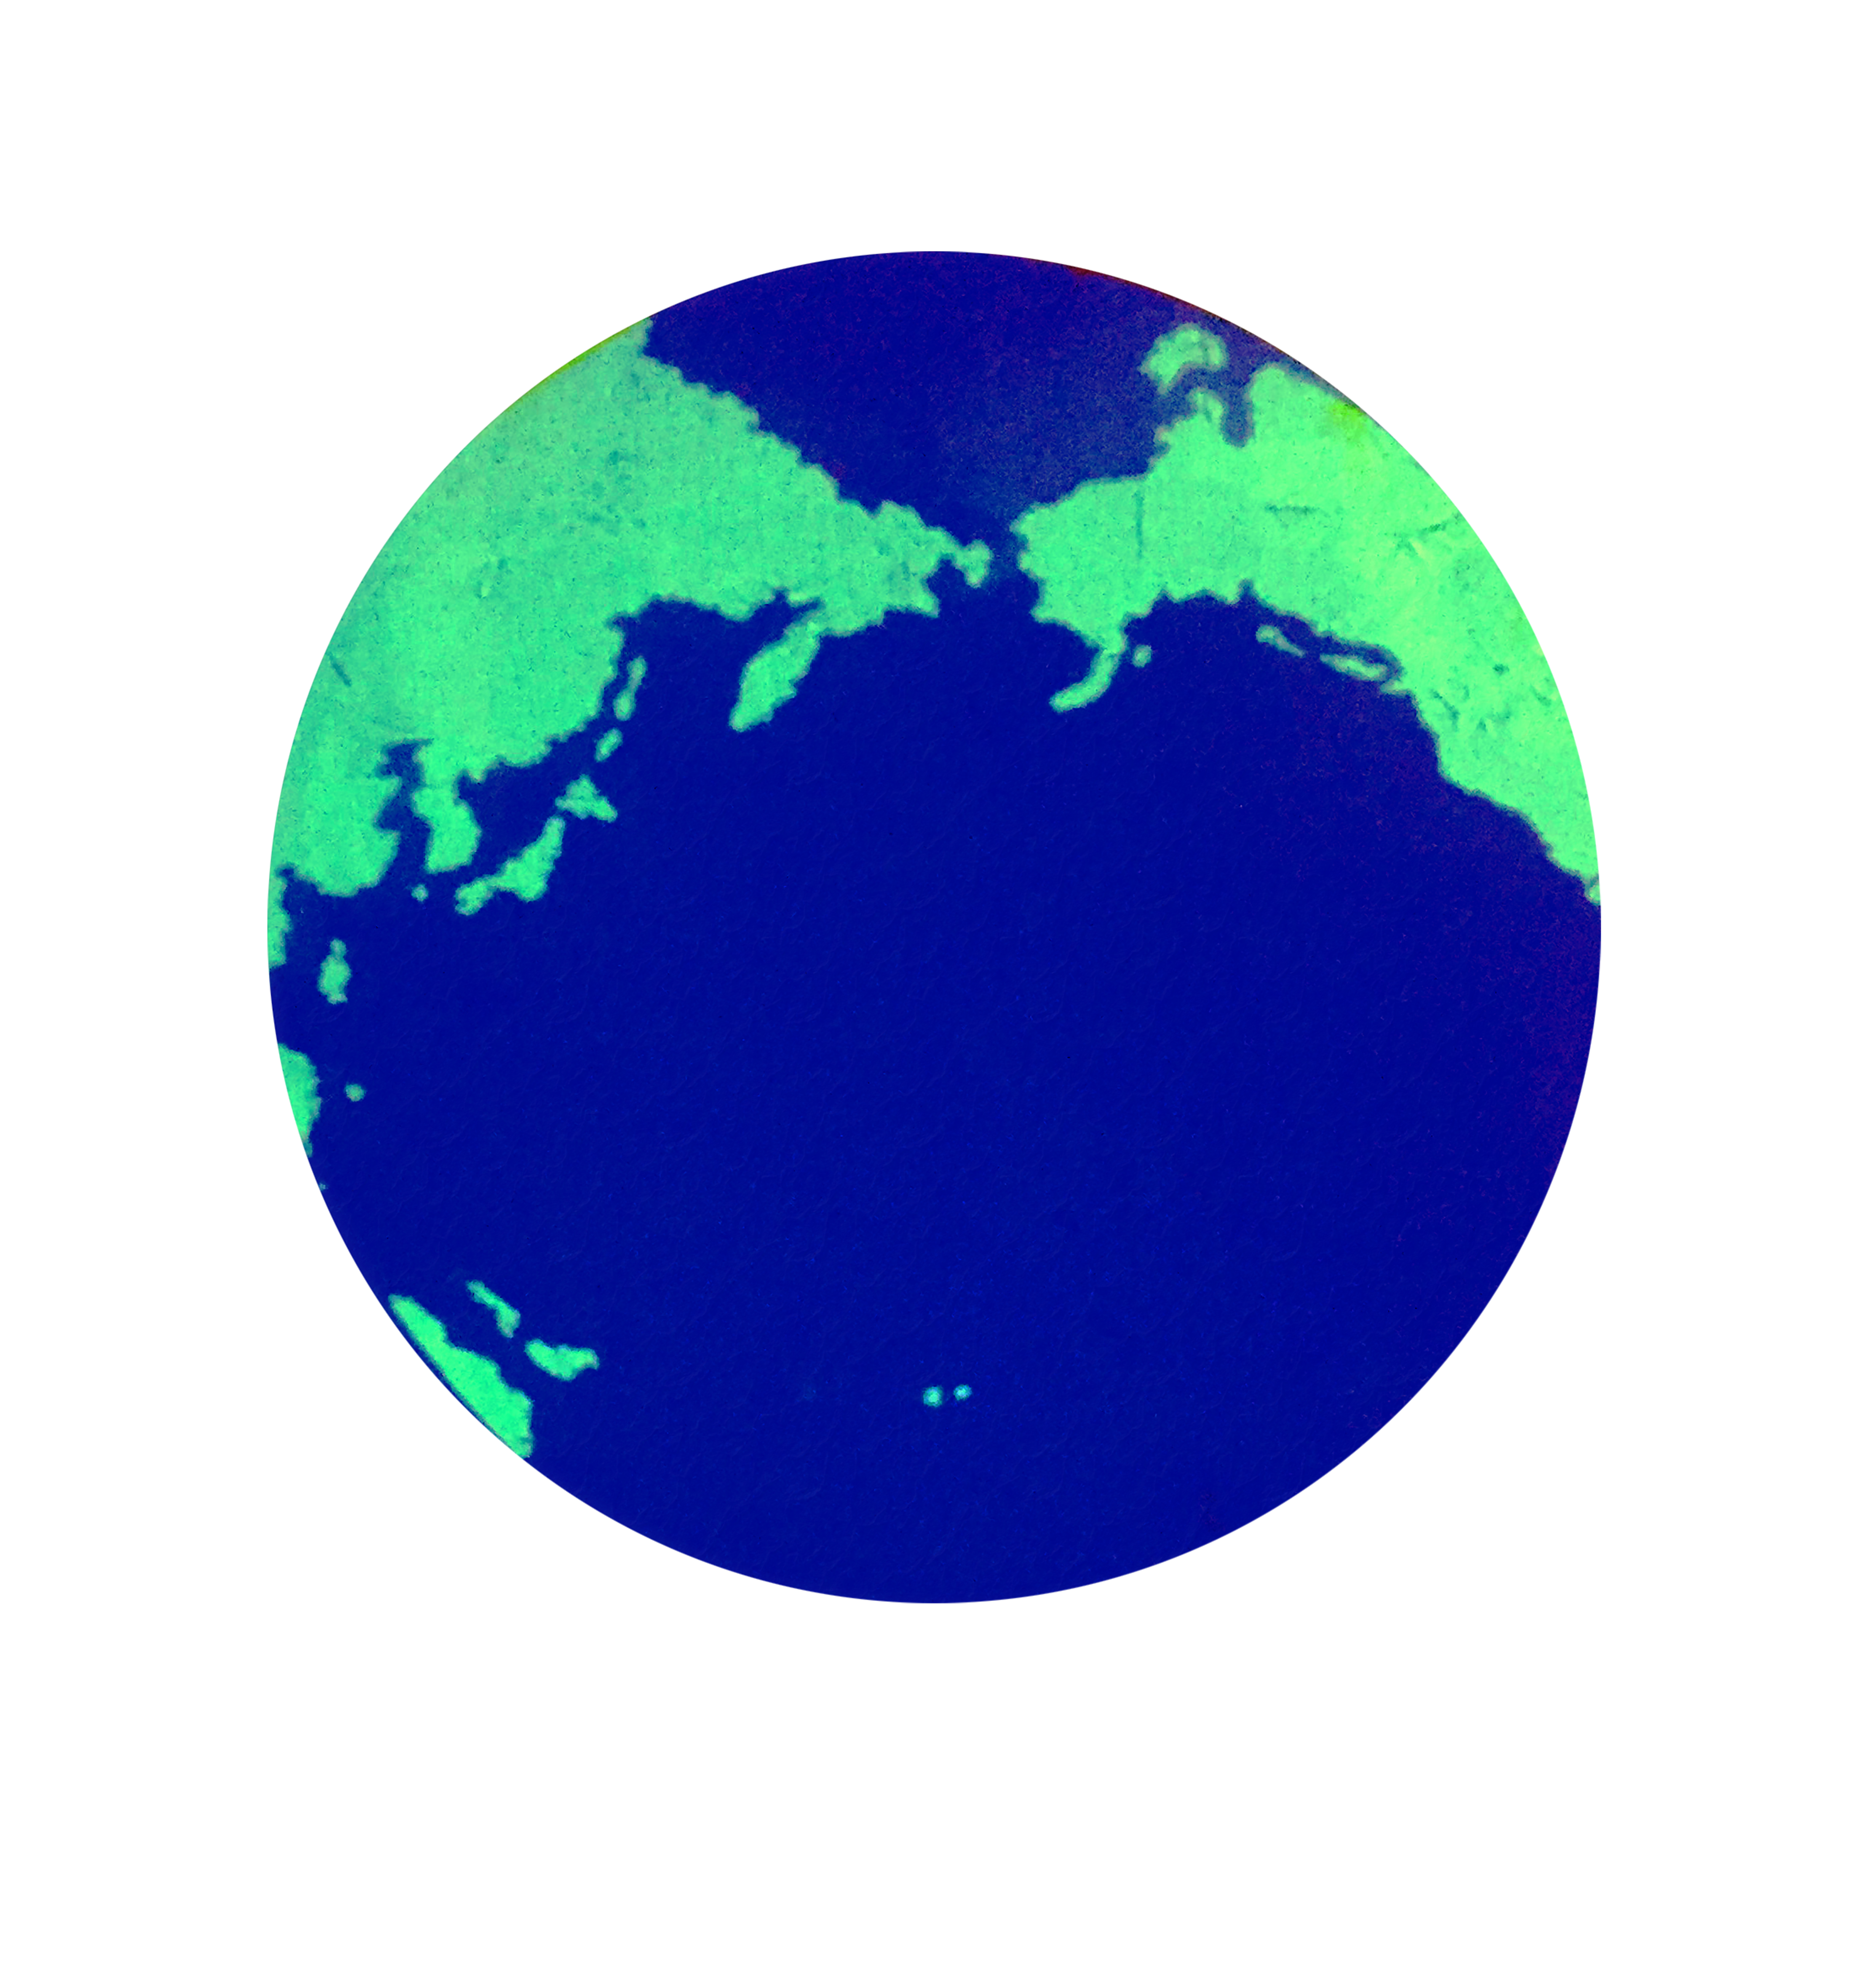 Shadow Earth Icon. Blue ocean and green land combined into a round Earth.푸른 대양과 녹색 대지의 그림자 인형 지구